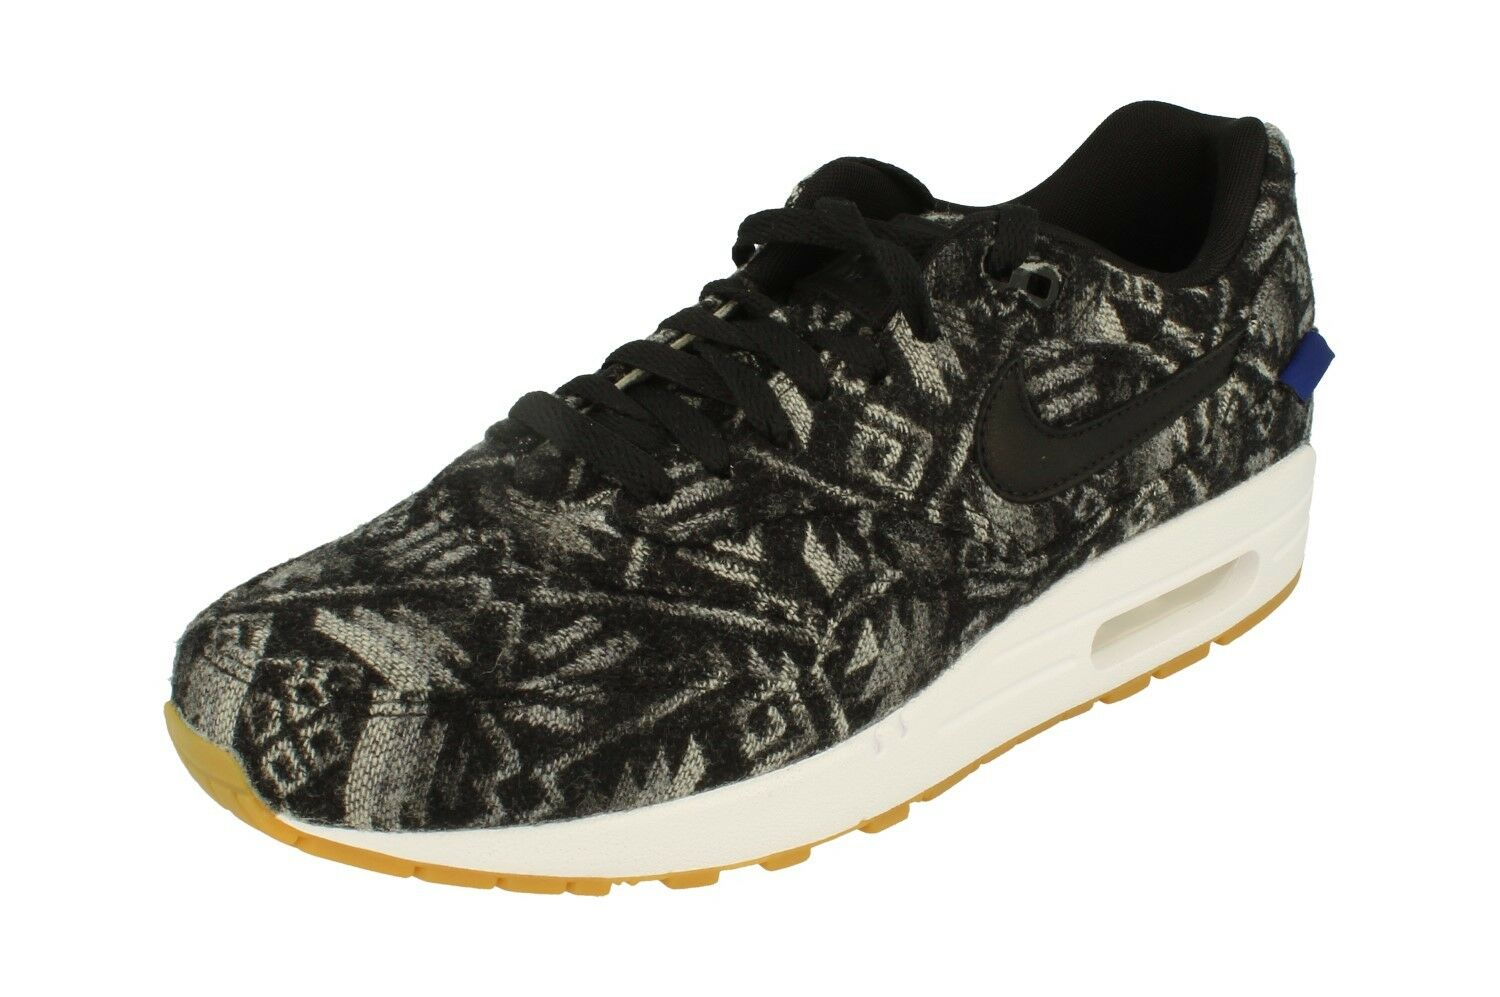 Nike Air Max 1 PRM Pendleton Mens Running Trainers 918620 Sneakers Shoes 004 The latest discount shoes for men and women